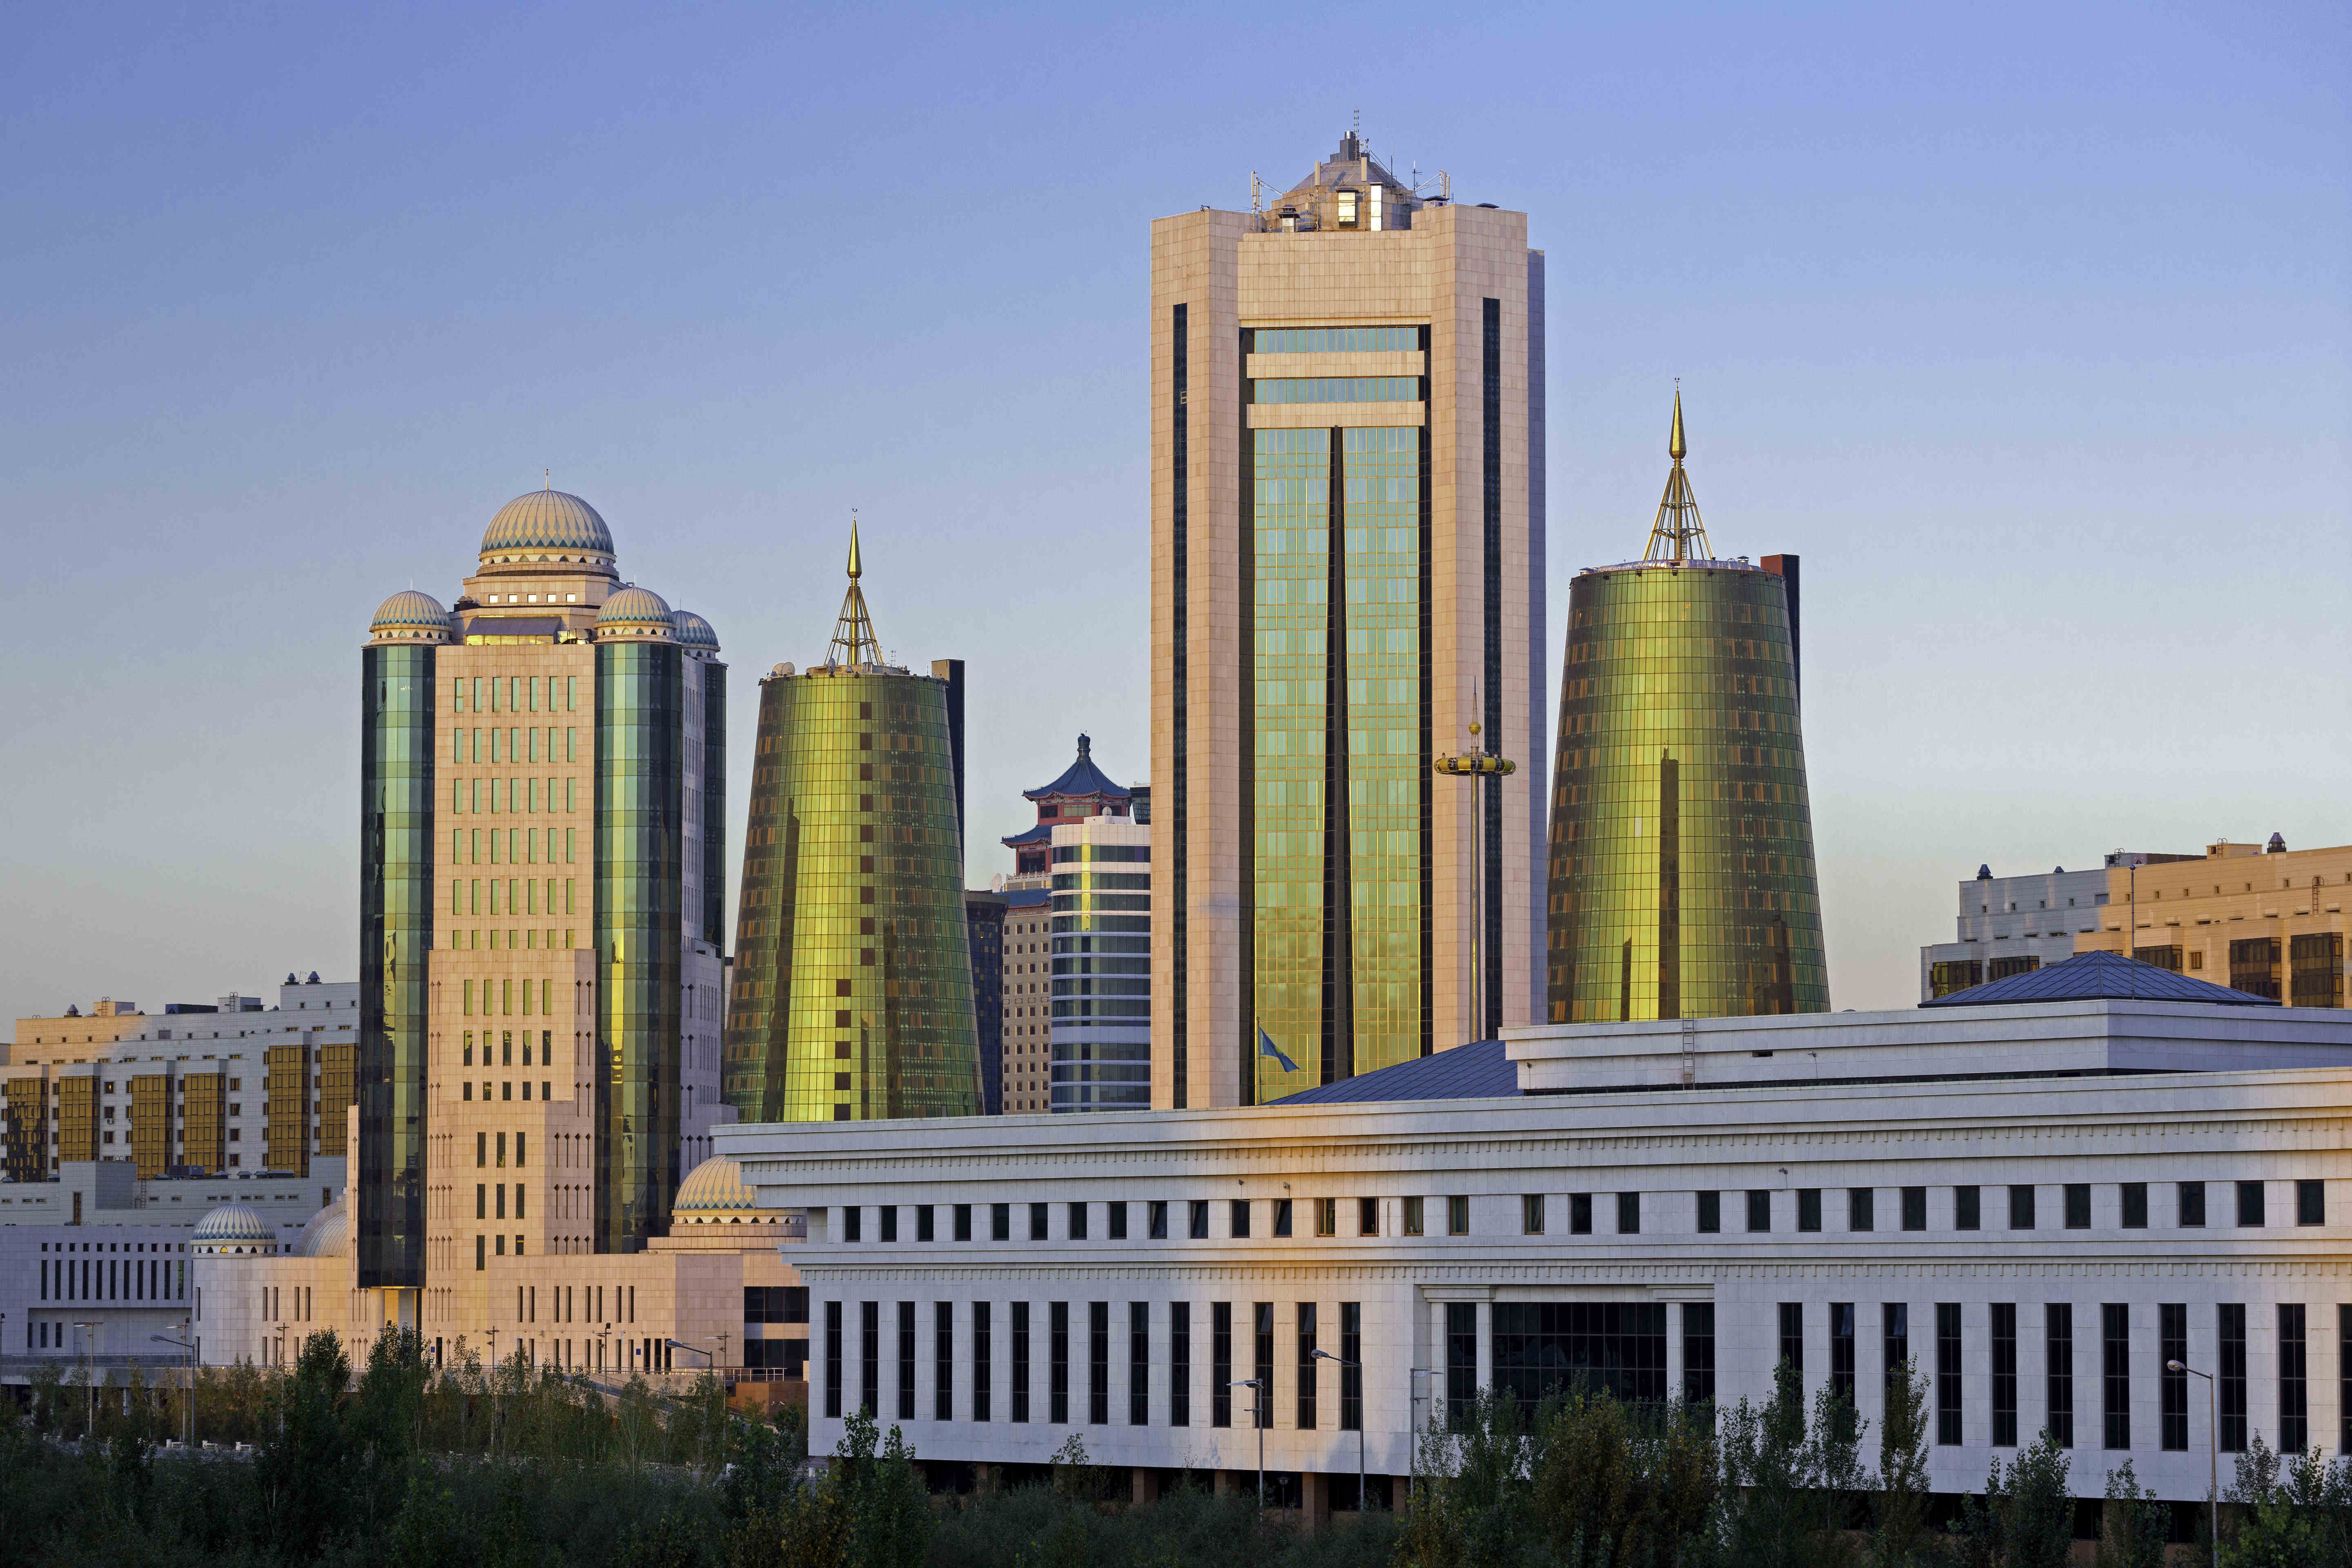 Central Asia, Kazakhstan, Astana, View of city and Ak Orda Presidential Palace